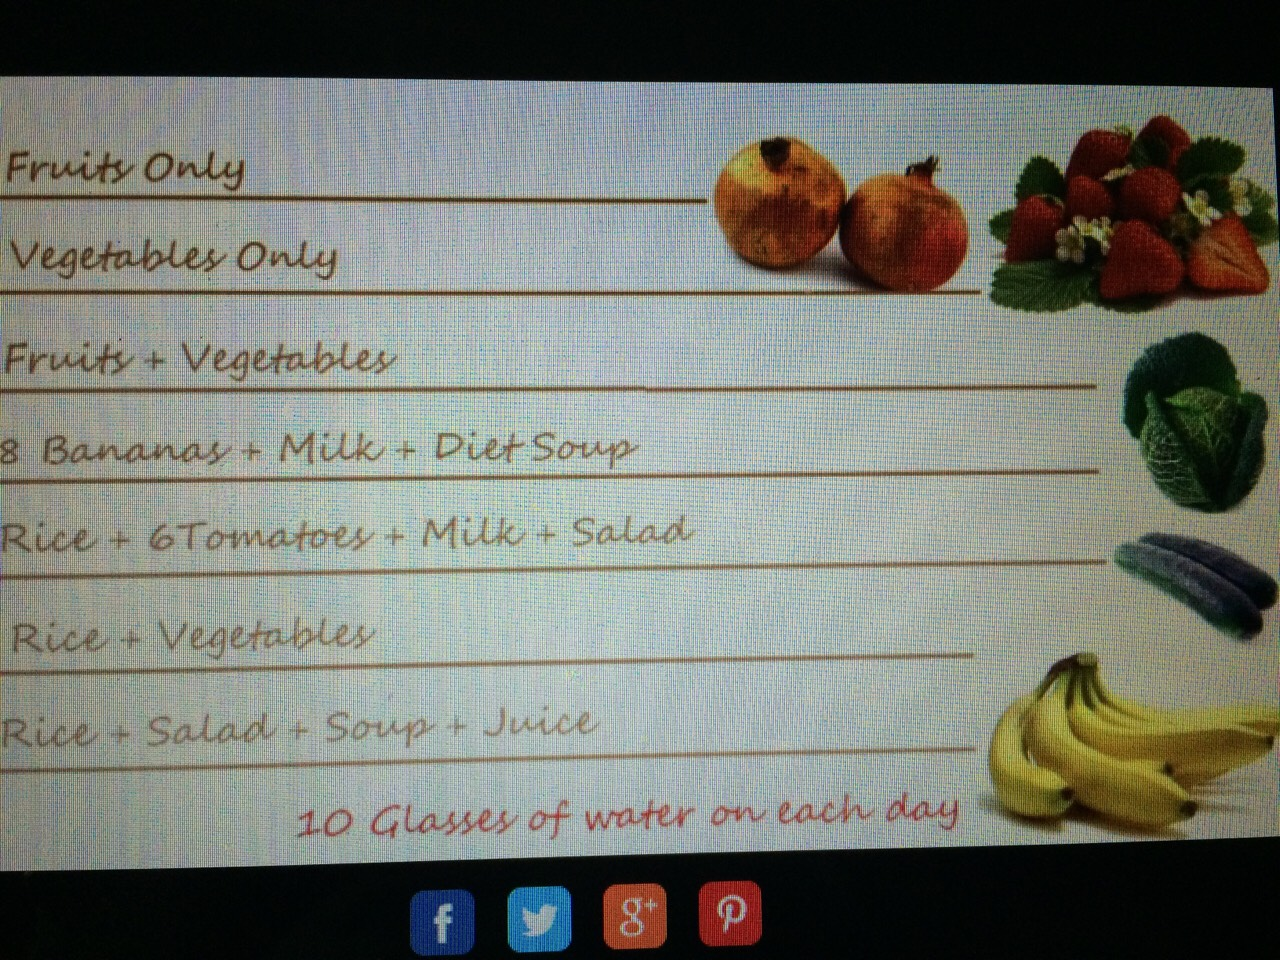 7 day cleanse  First day - fruit only Second day - vegetables only